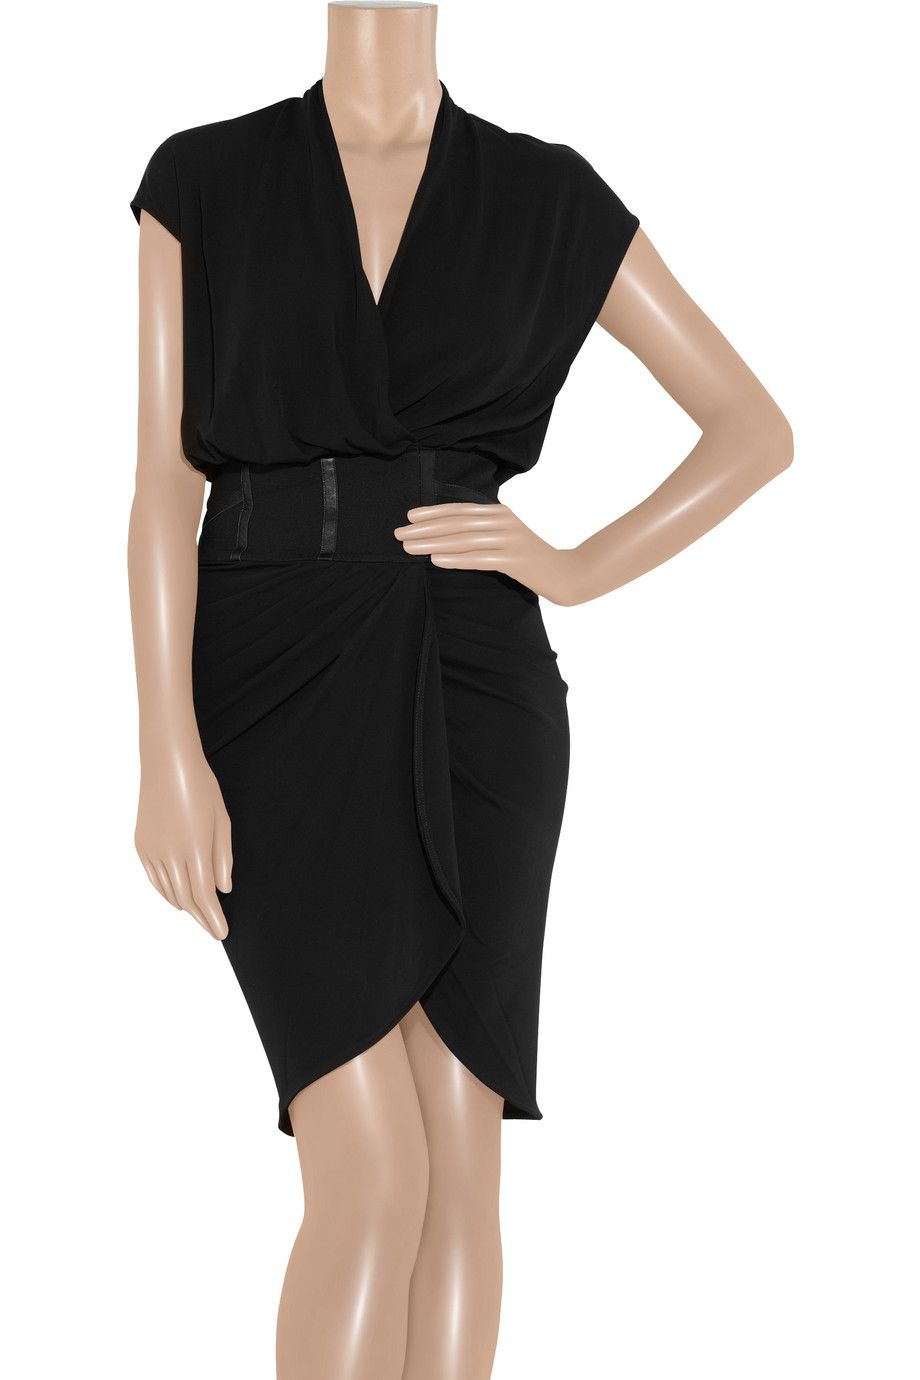 haute hippie crepe-jersey wrap dress